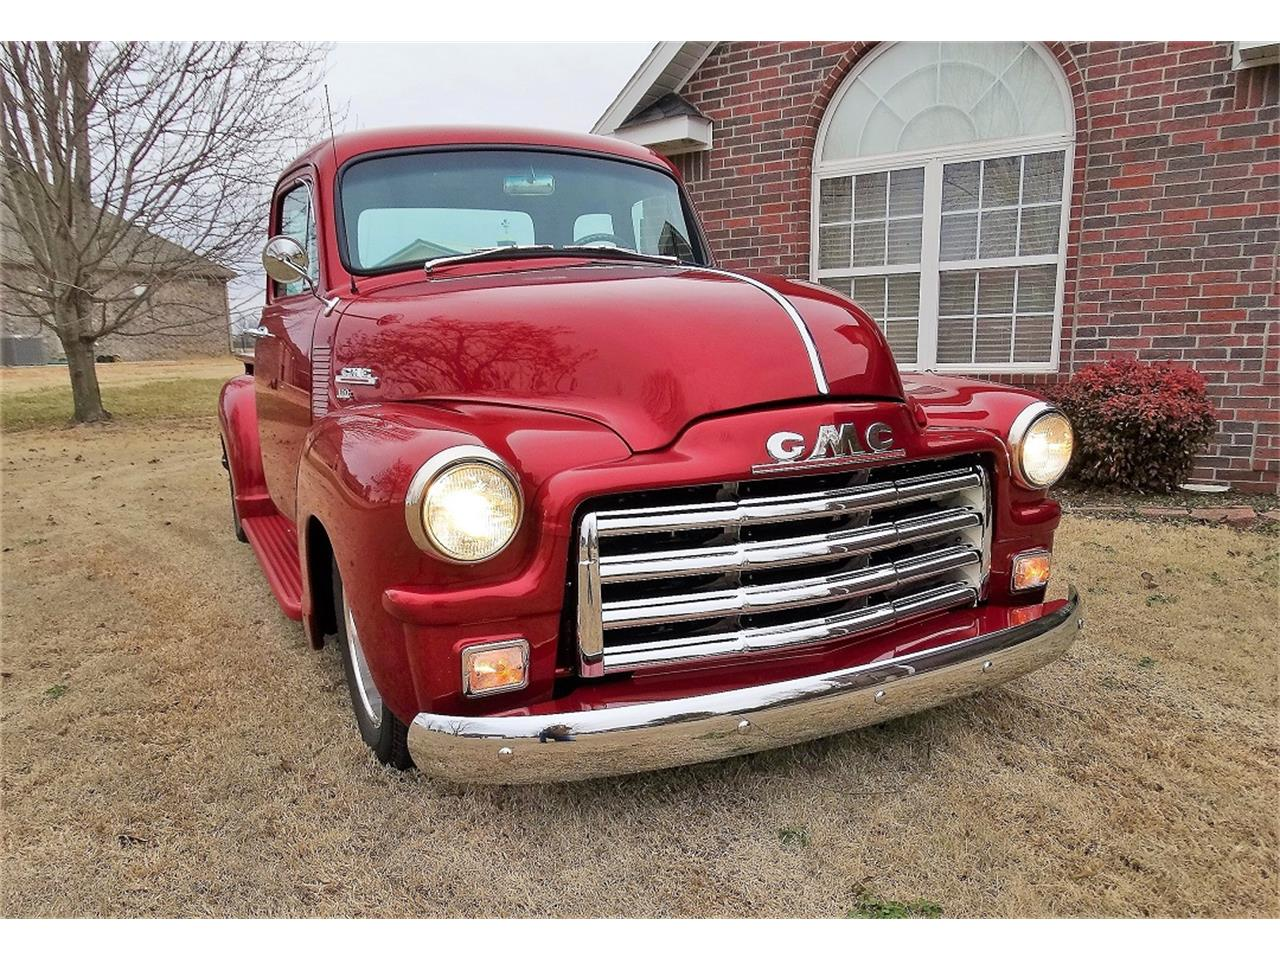 Large Picture of '54 GMC Pickup located in Arkansas - $54,900.00 - N8MG